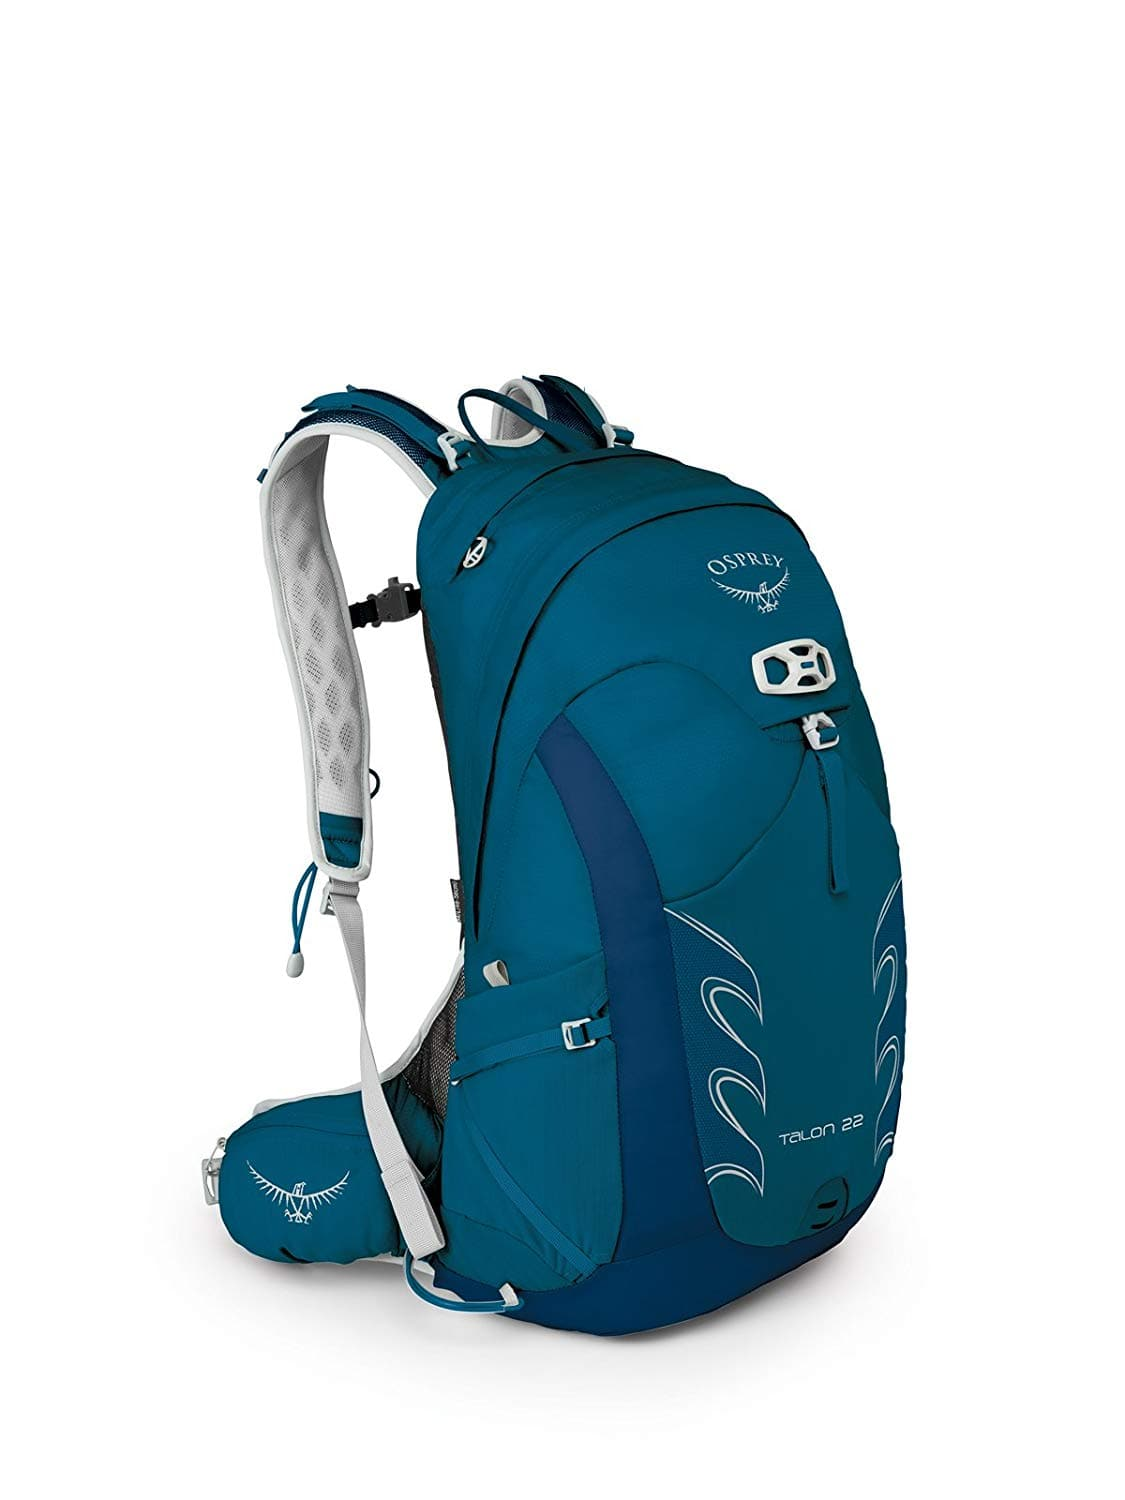 Find deals from more stores like Osprey Packs